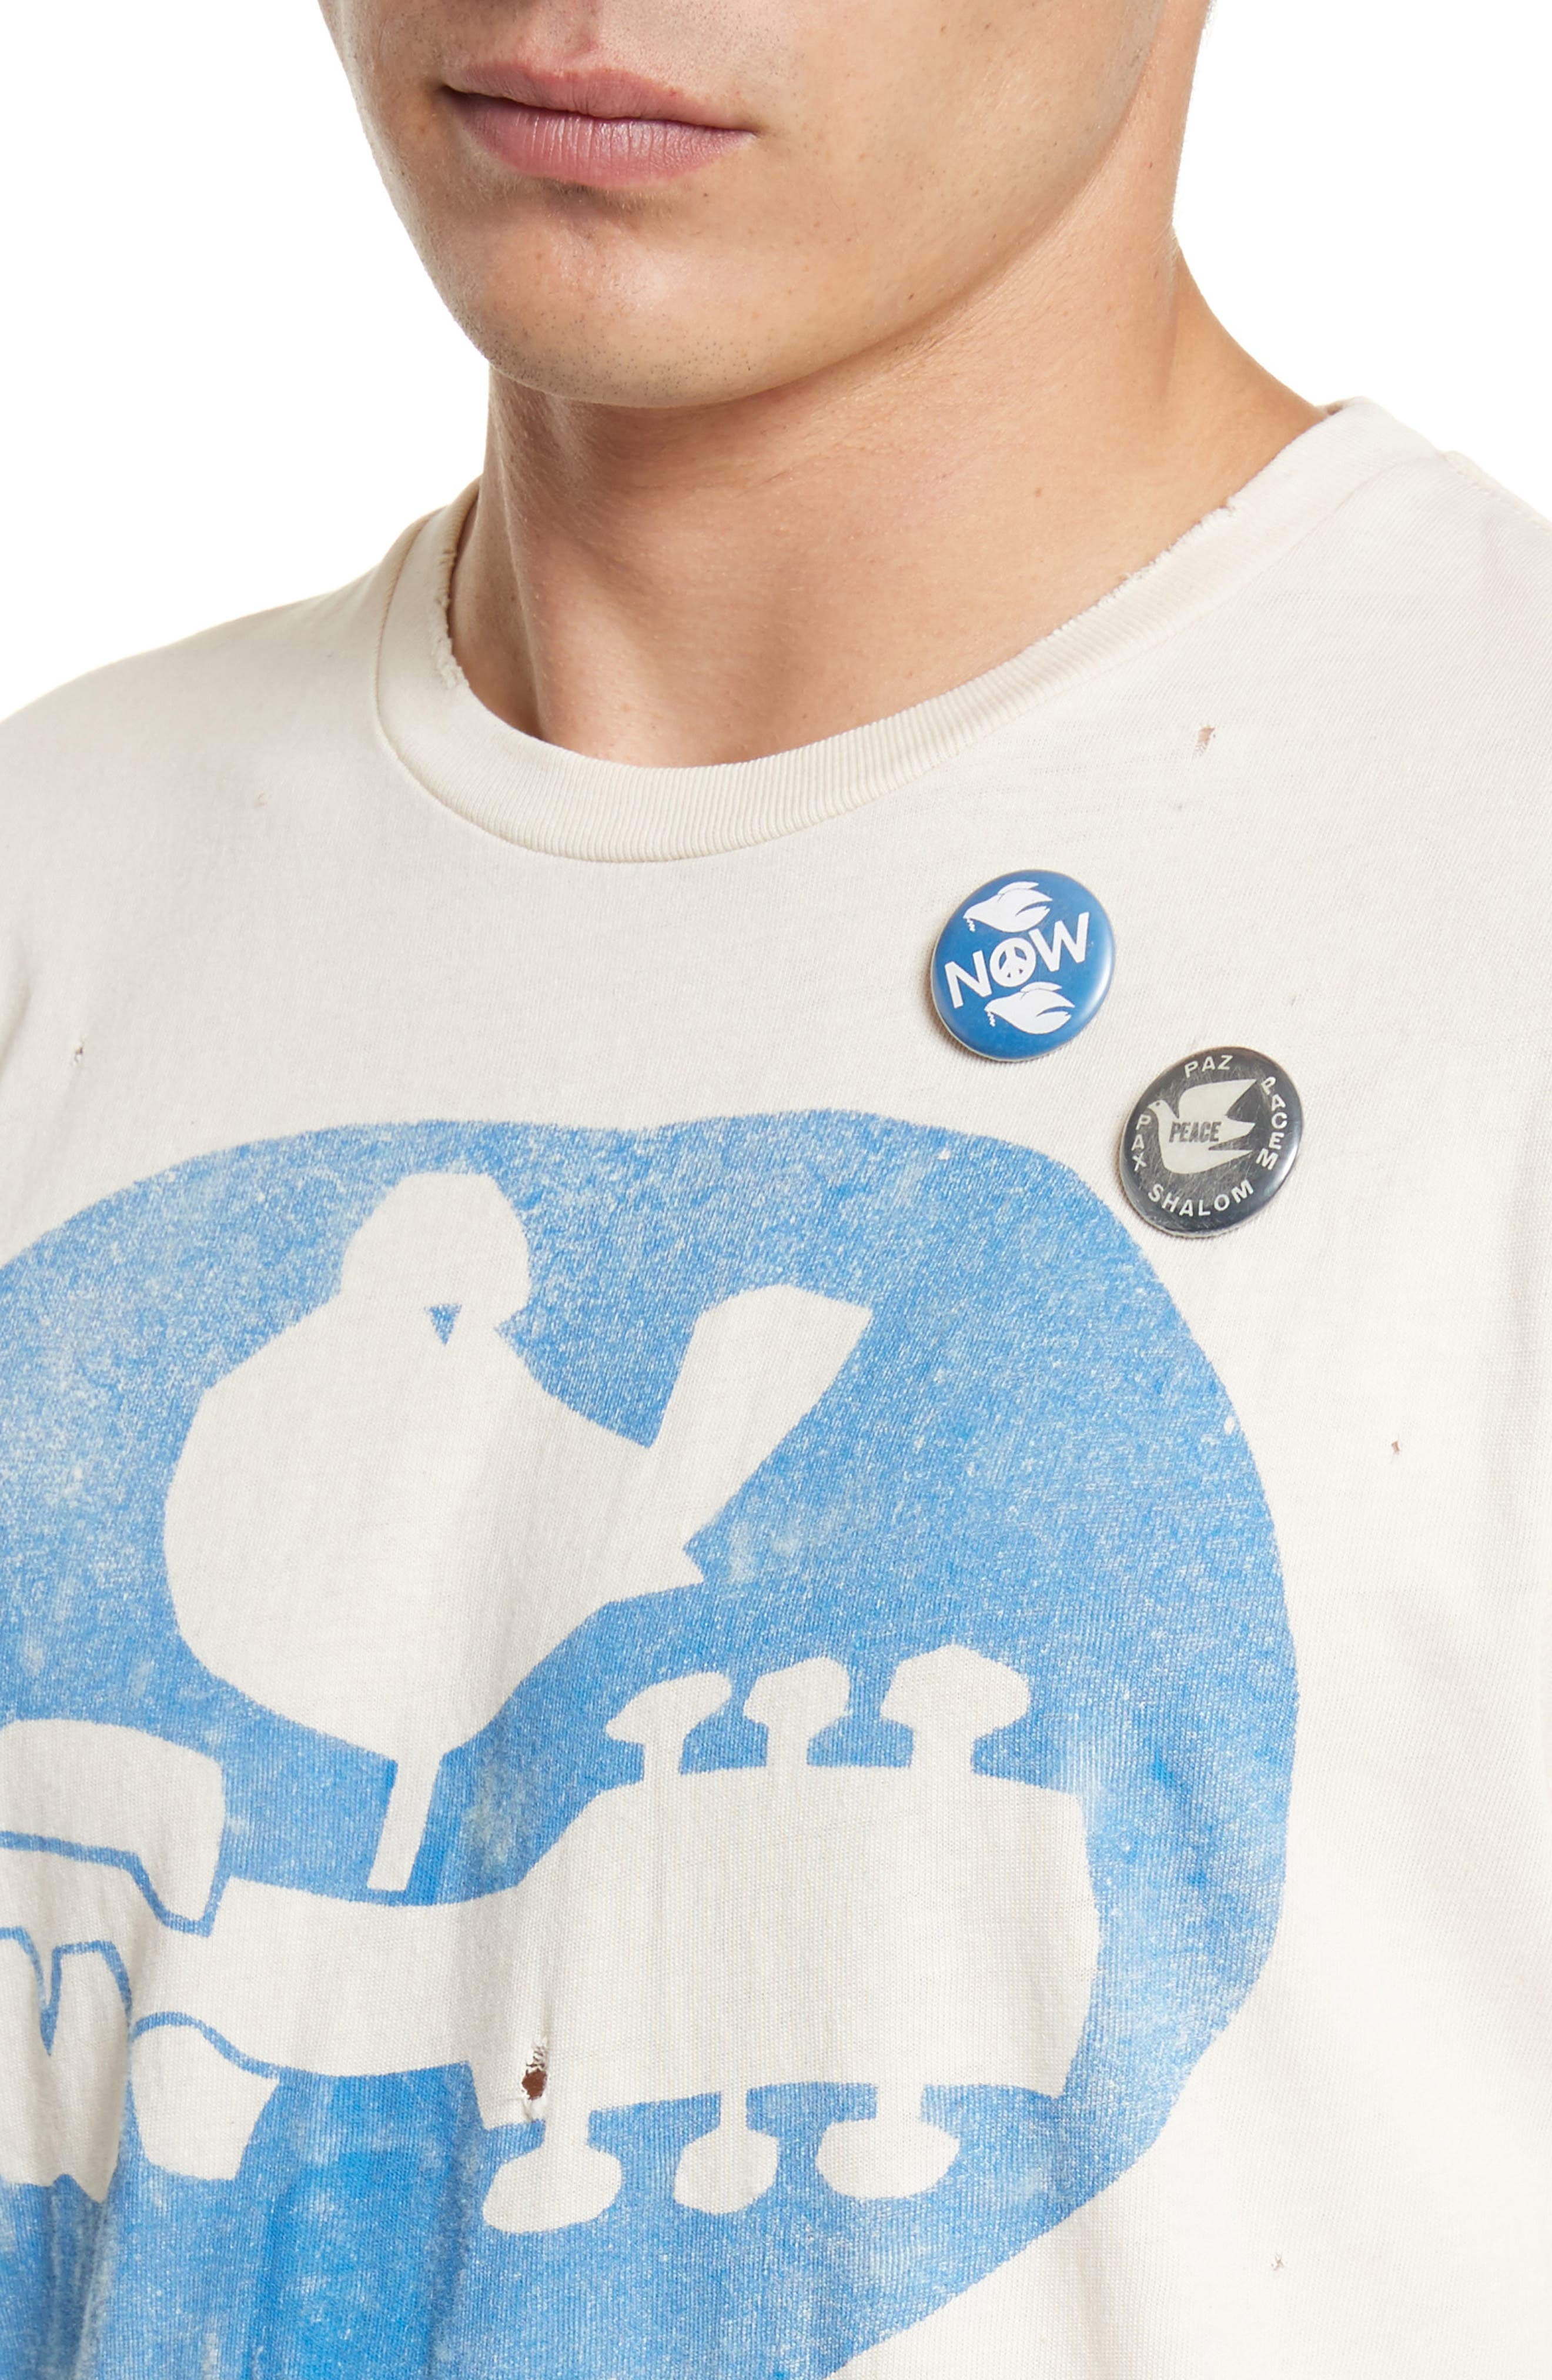 Woodstock Graphic T-Shirt with Badges,                             Alternate thumbnail 4, color,                             100